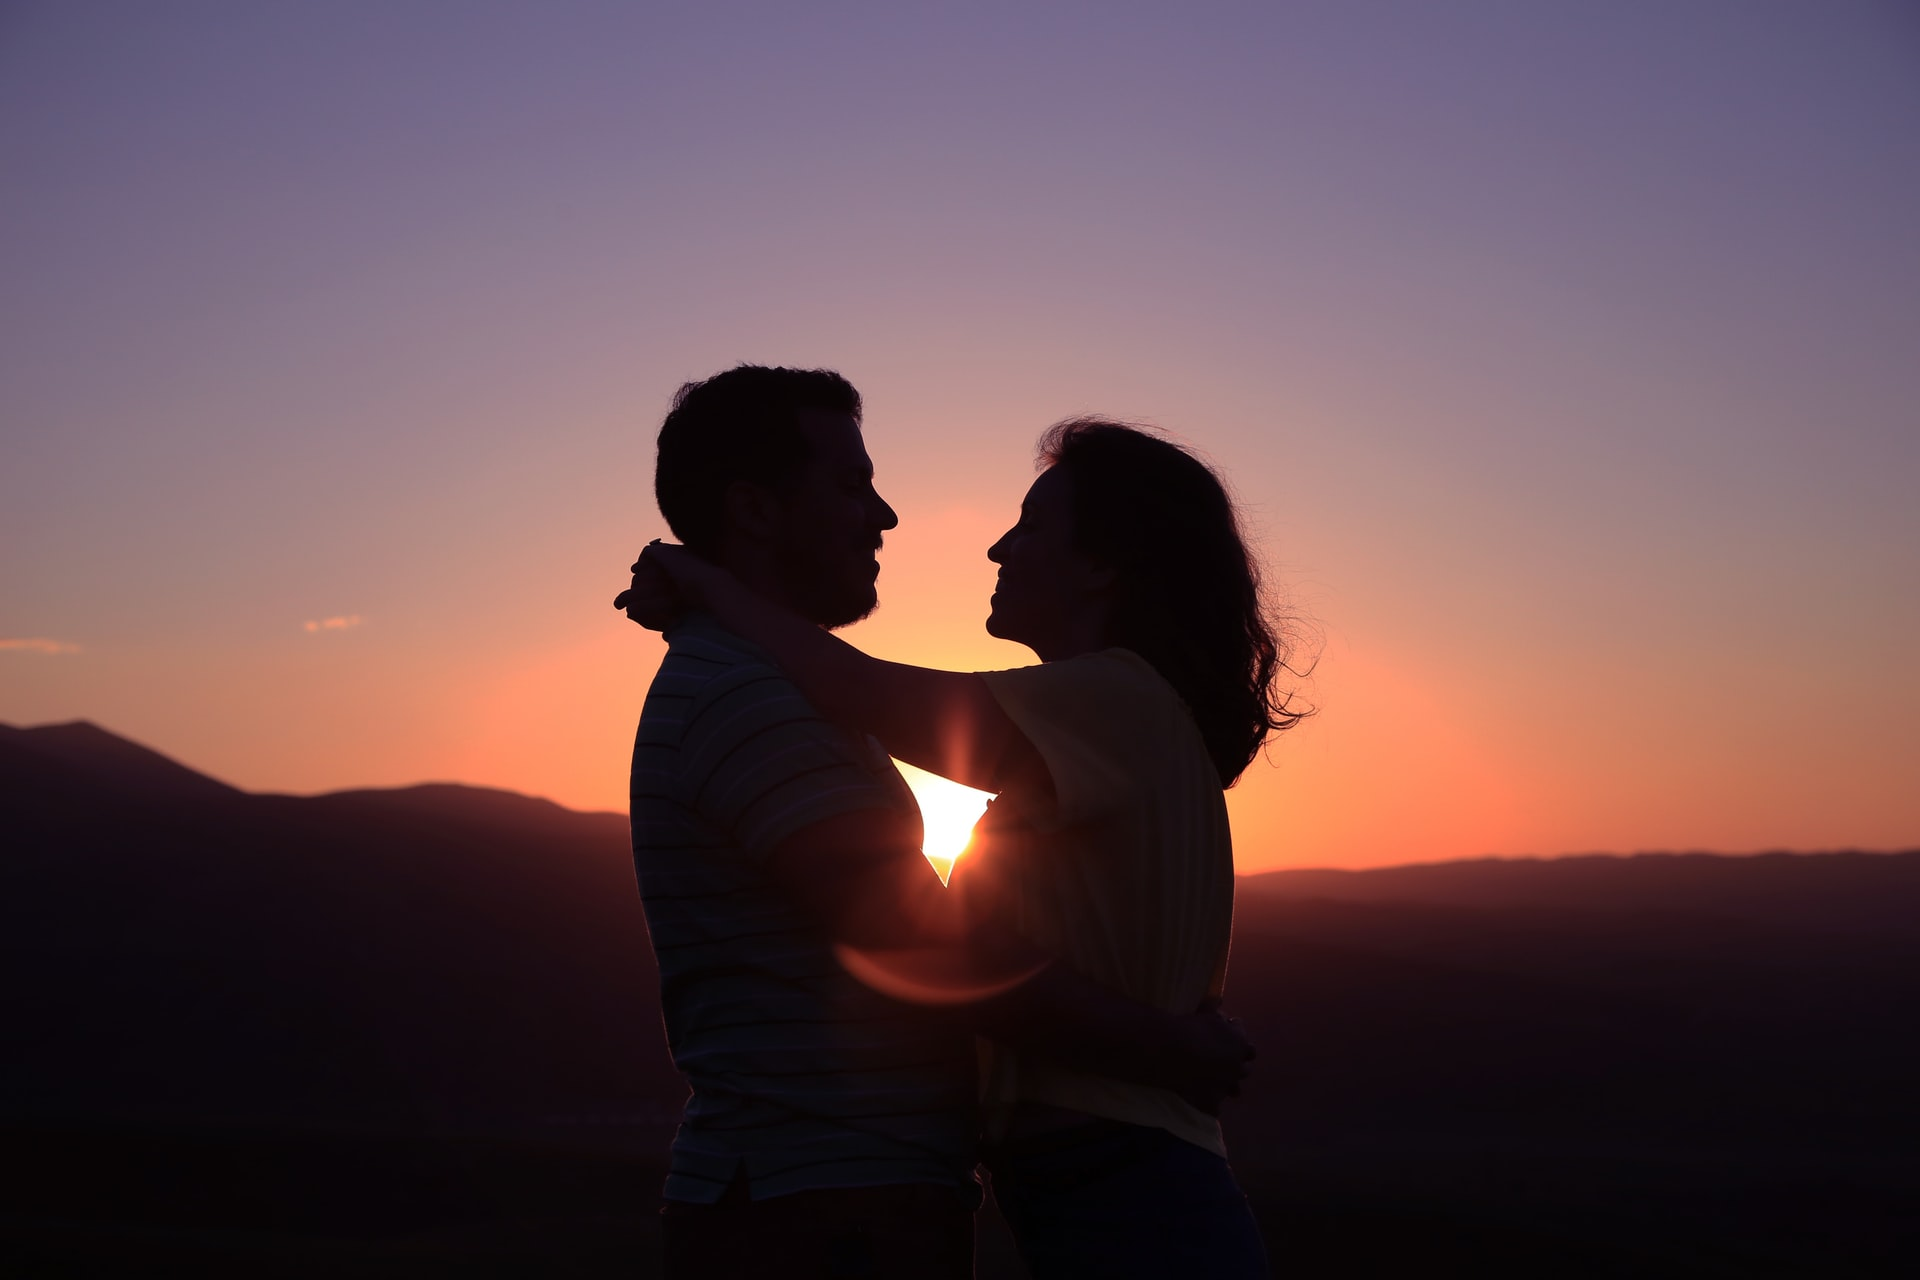 A couple embraces at sunset